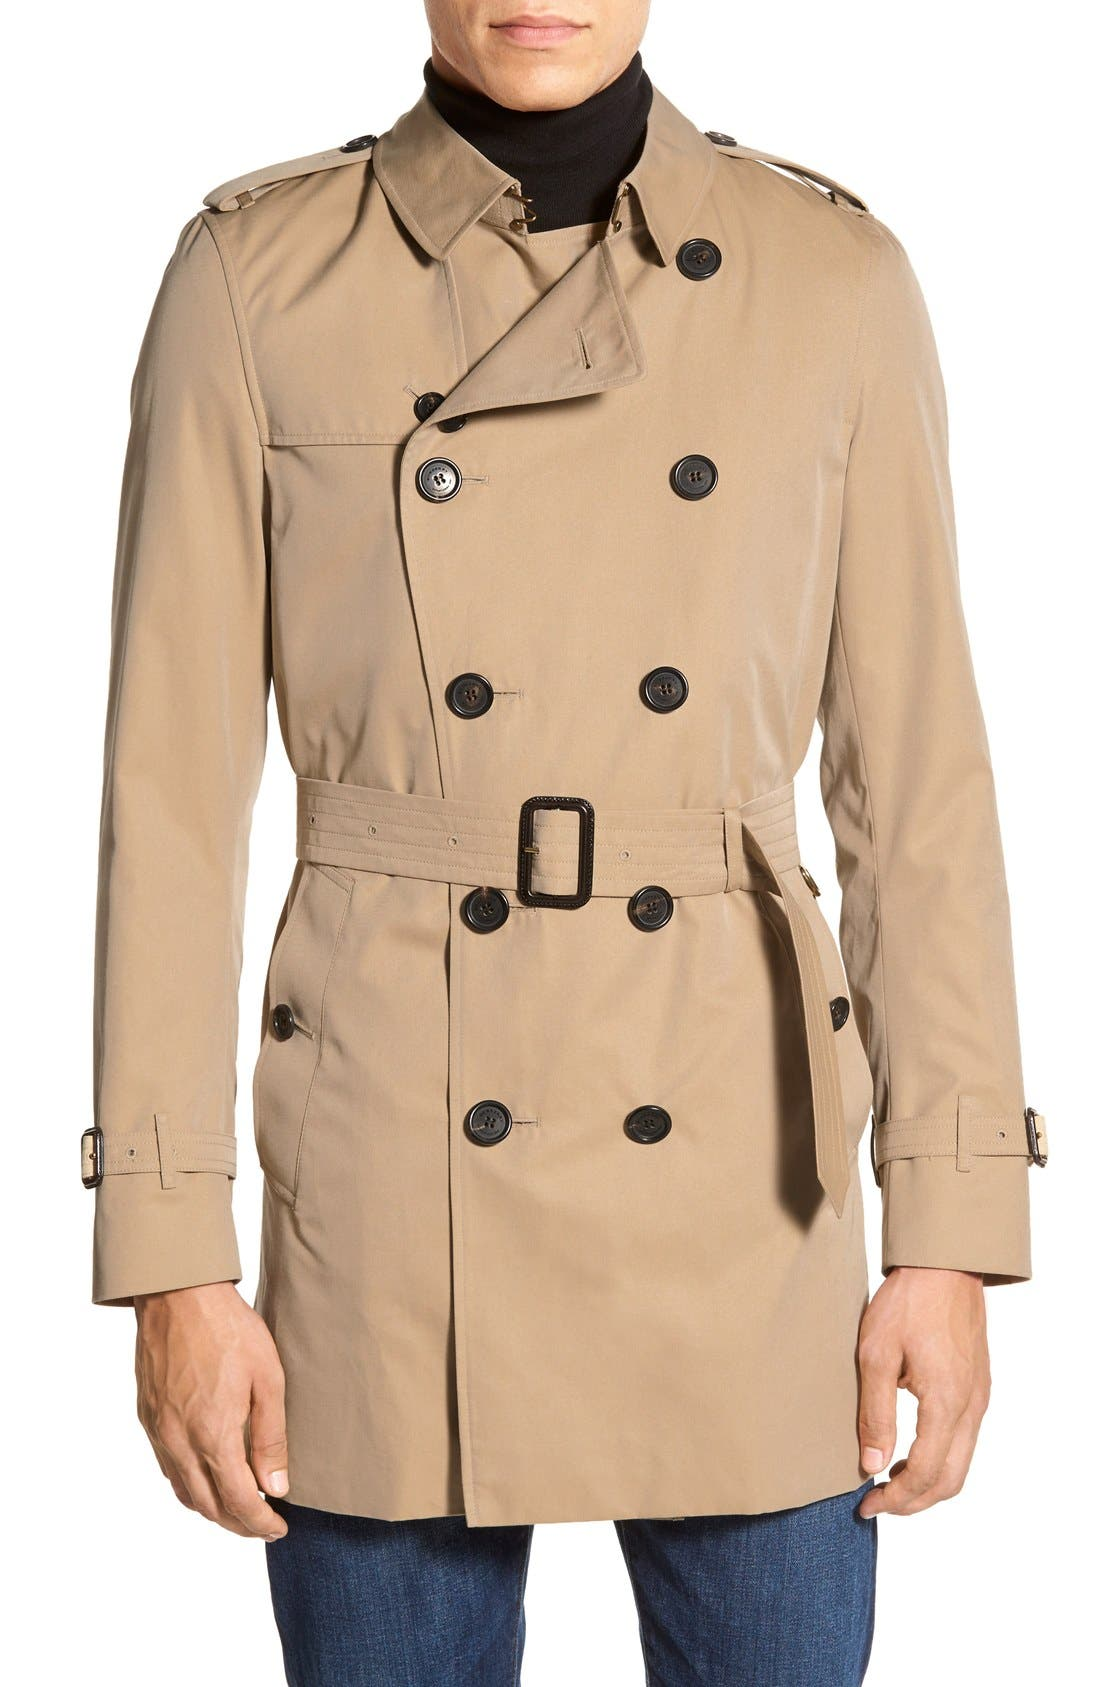 Main Image - Burberry Kensington Double Breasted Trench Coat (Regular & Big)